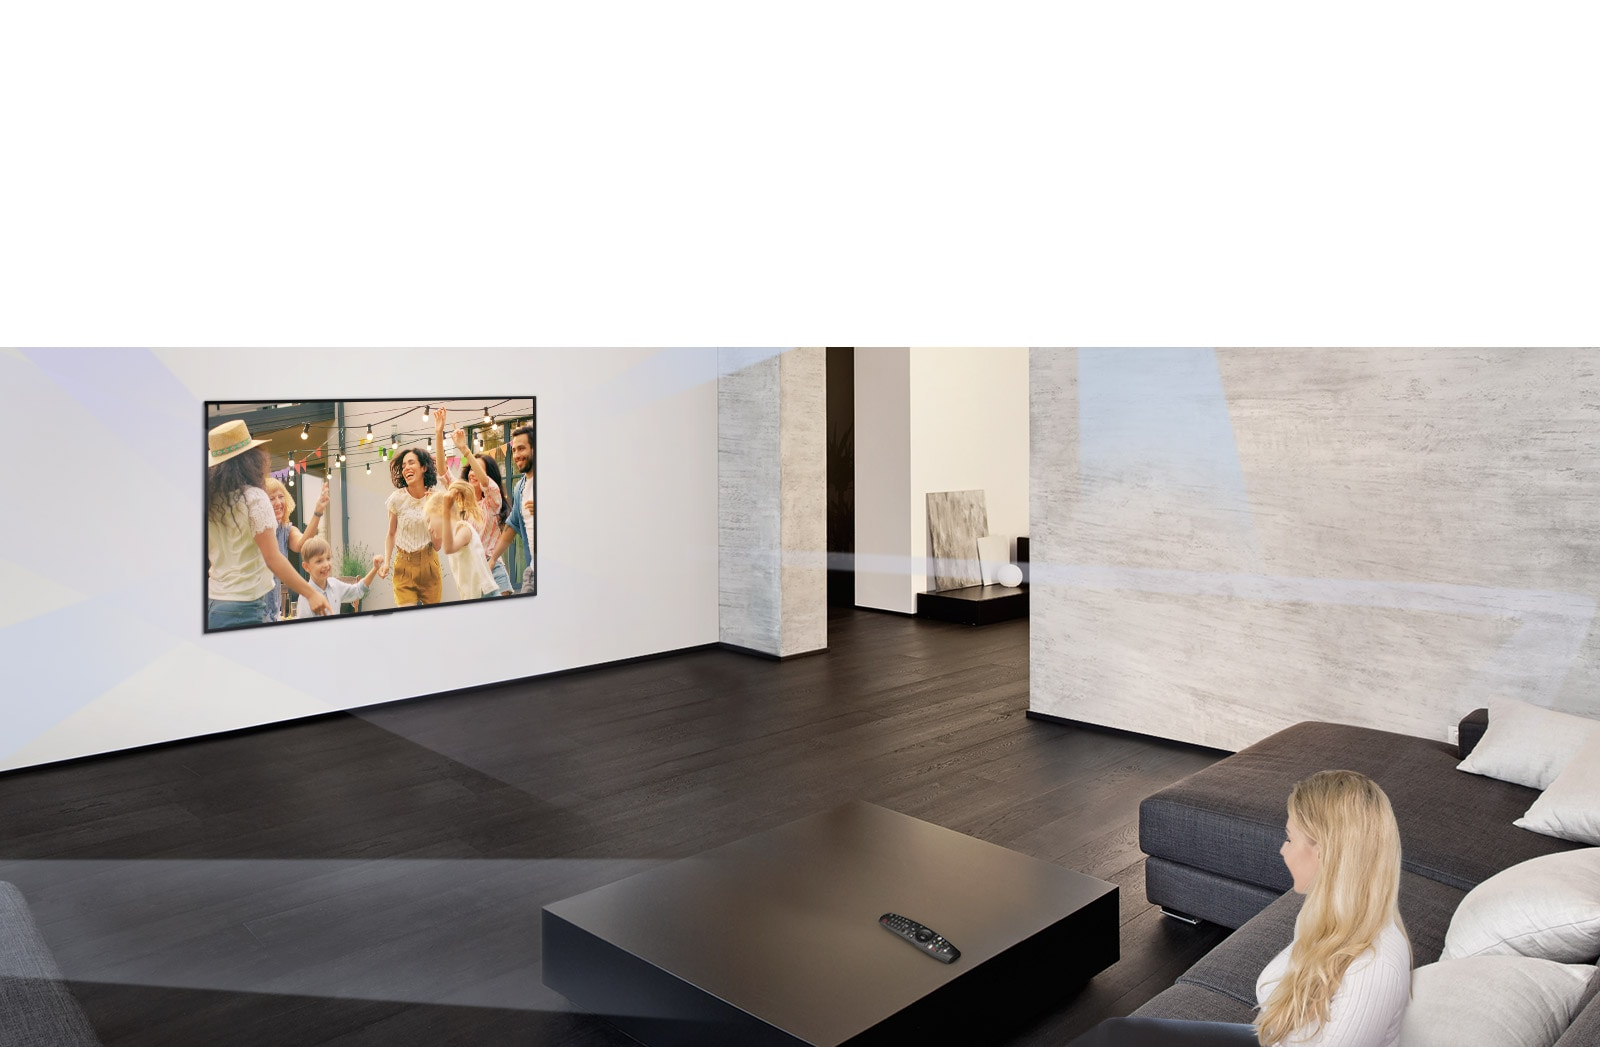 Woman in large and minimalistic living room watching people dancing on TV